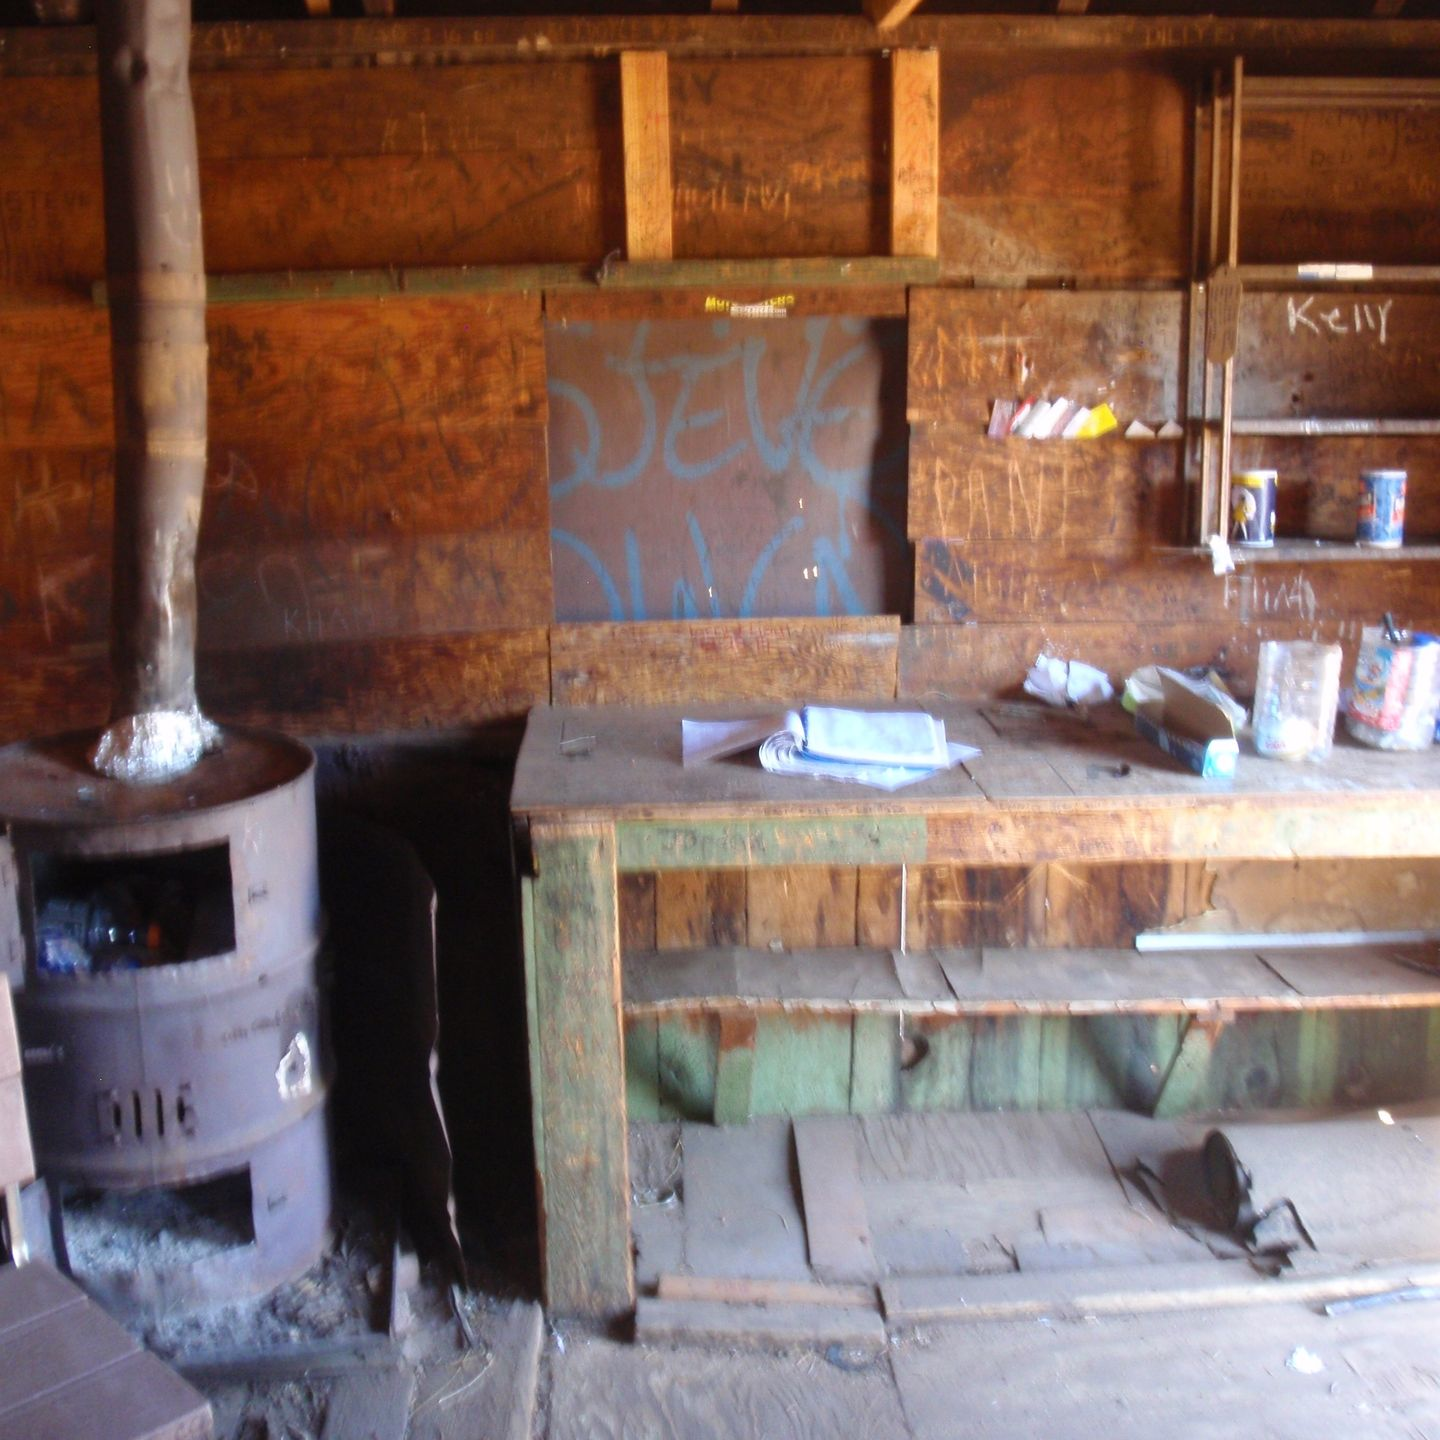 SC65 - McIvers Cabin - Waypoint 14: McIvers Cabin